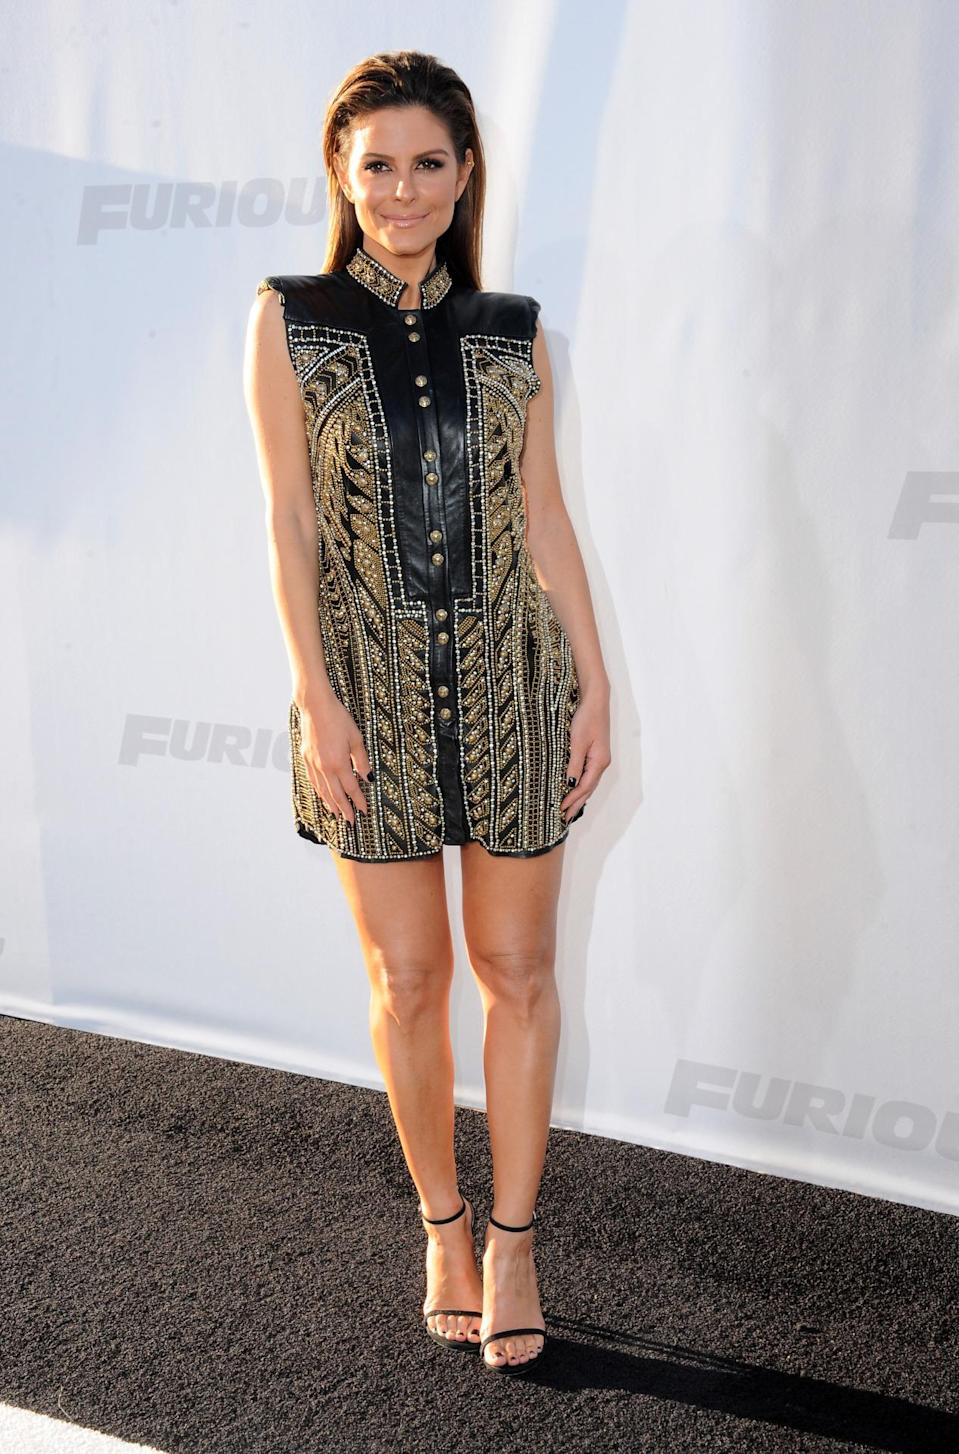 """Maria Menounos looked fierce in a leather and gold metal accented Balmian mini. The TV personality was on hand to cover the event and got nostalgic on Instagram prior to the premiere. """"…"""